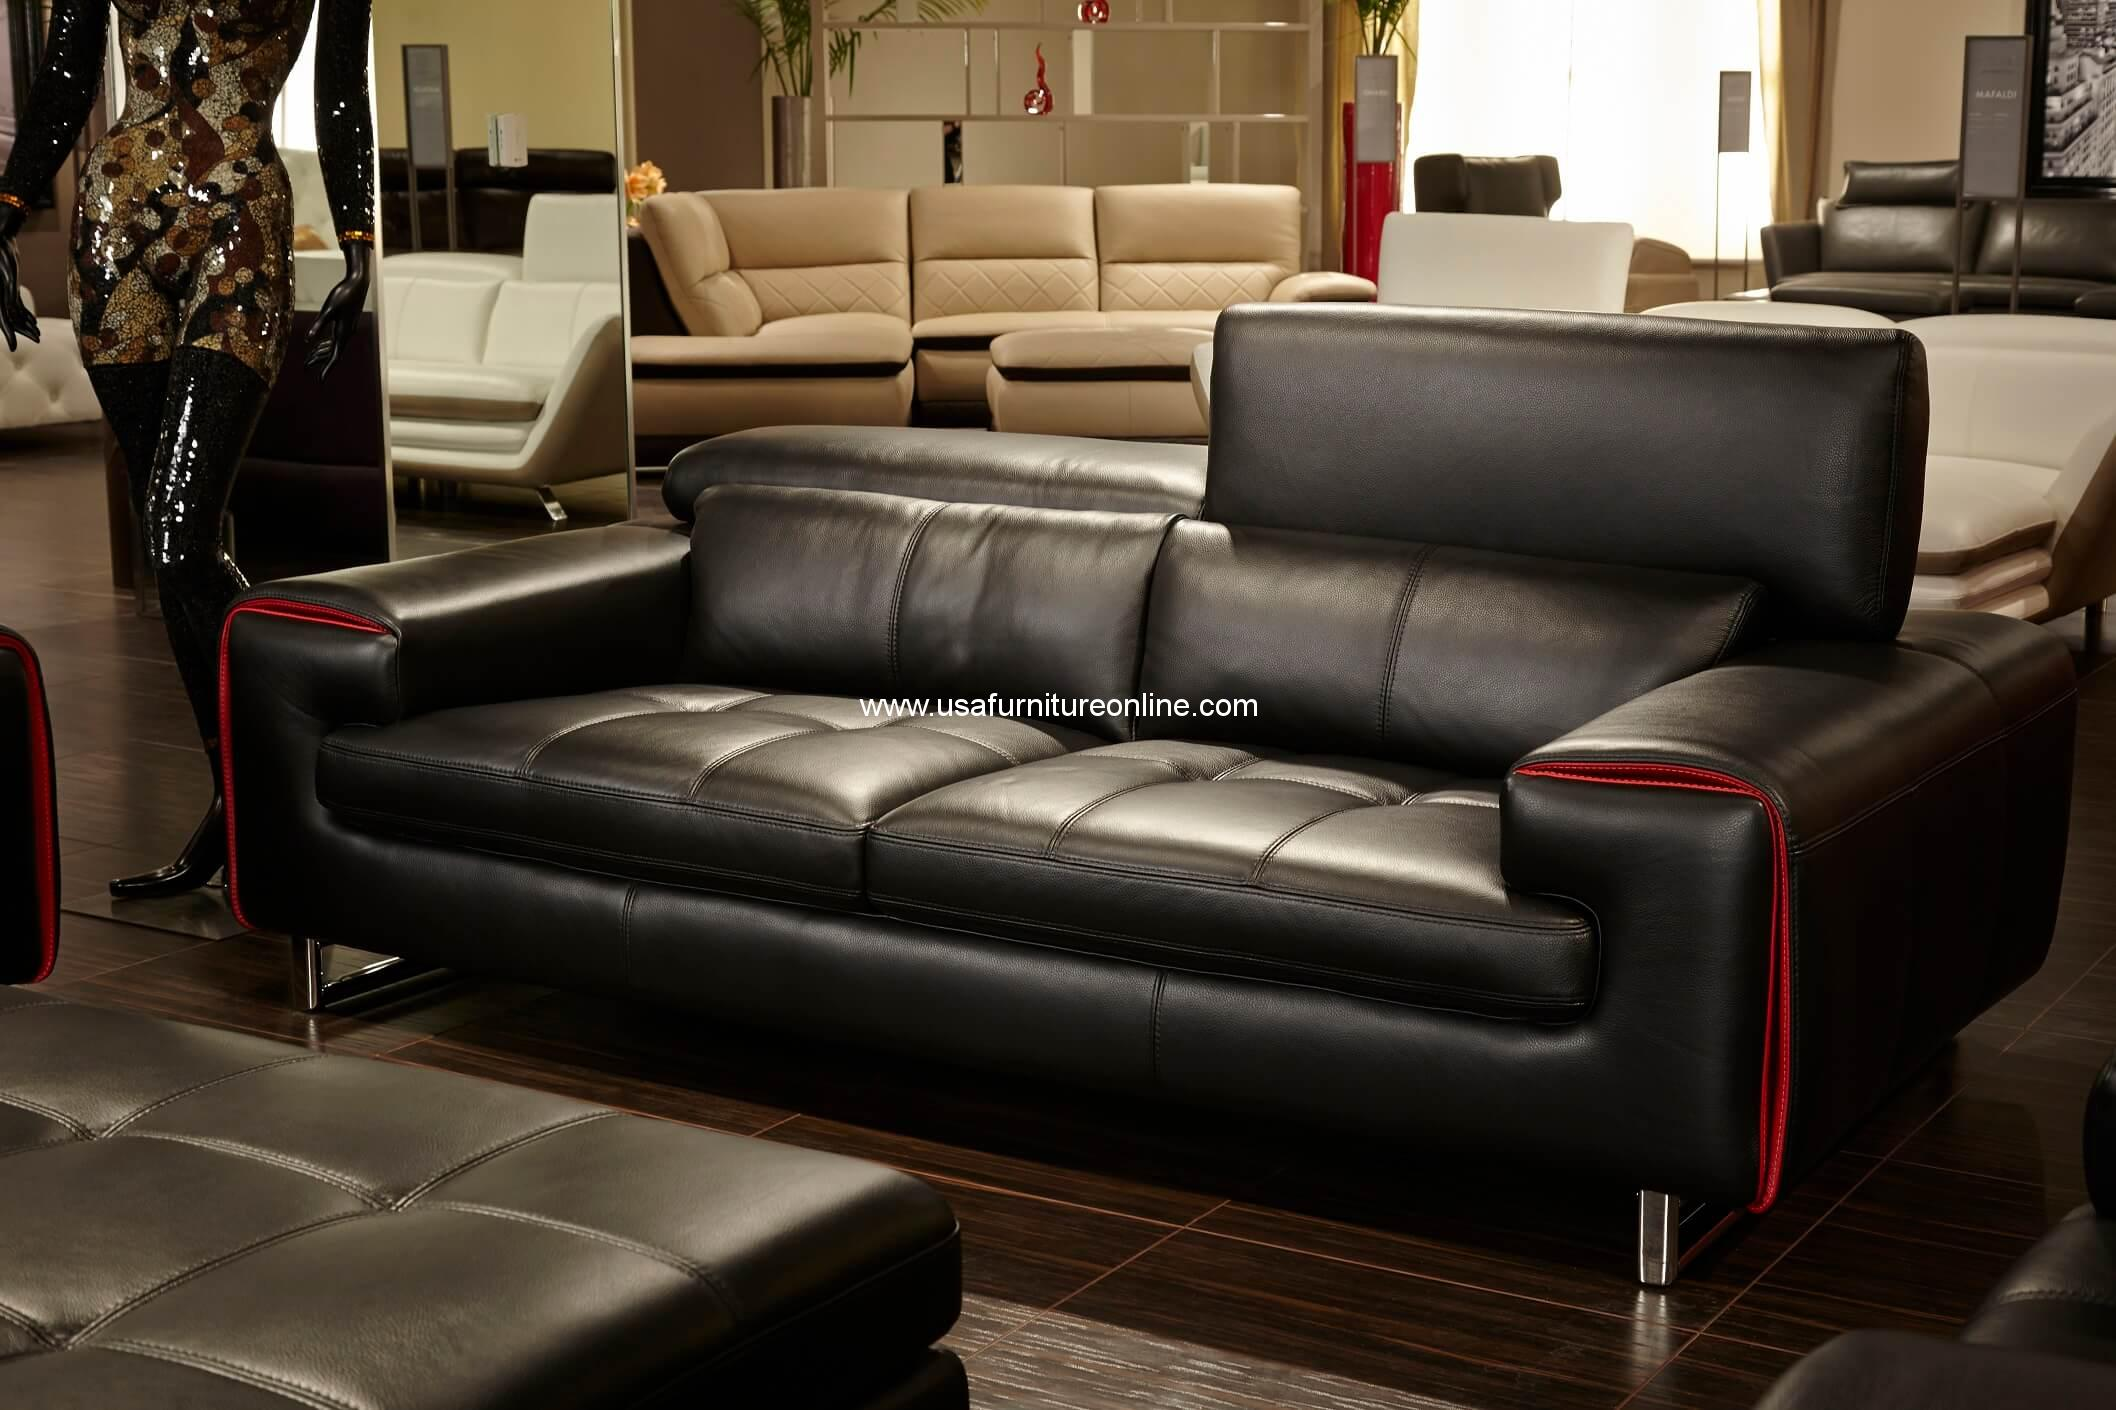 Magrena Black Leather Sofa With Red Trim